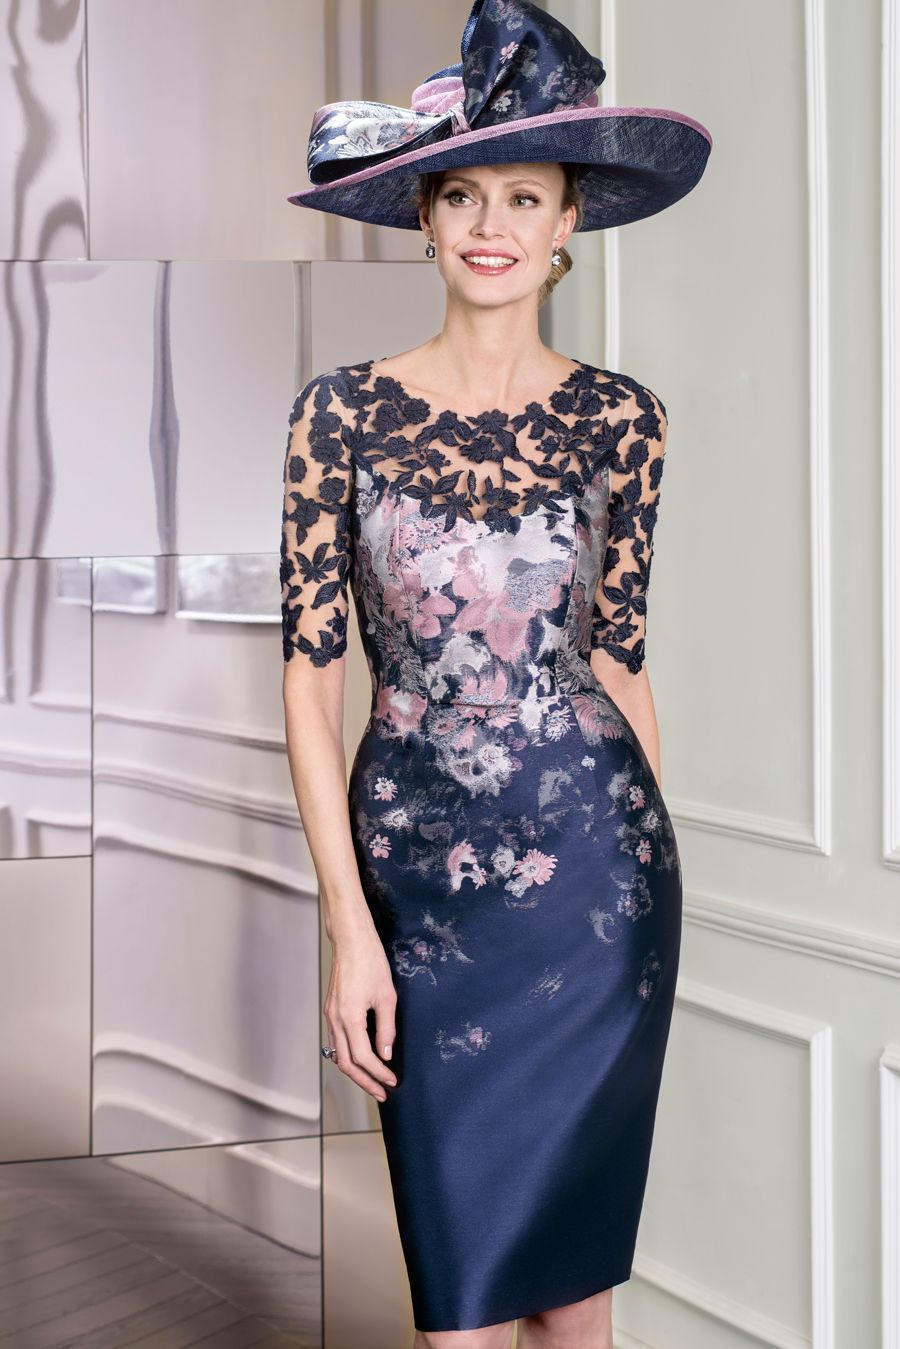 whether you're looking for a demure wedding day outfit or